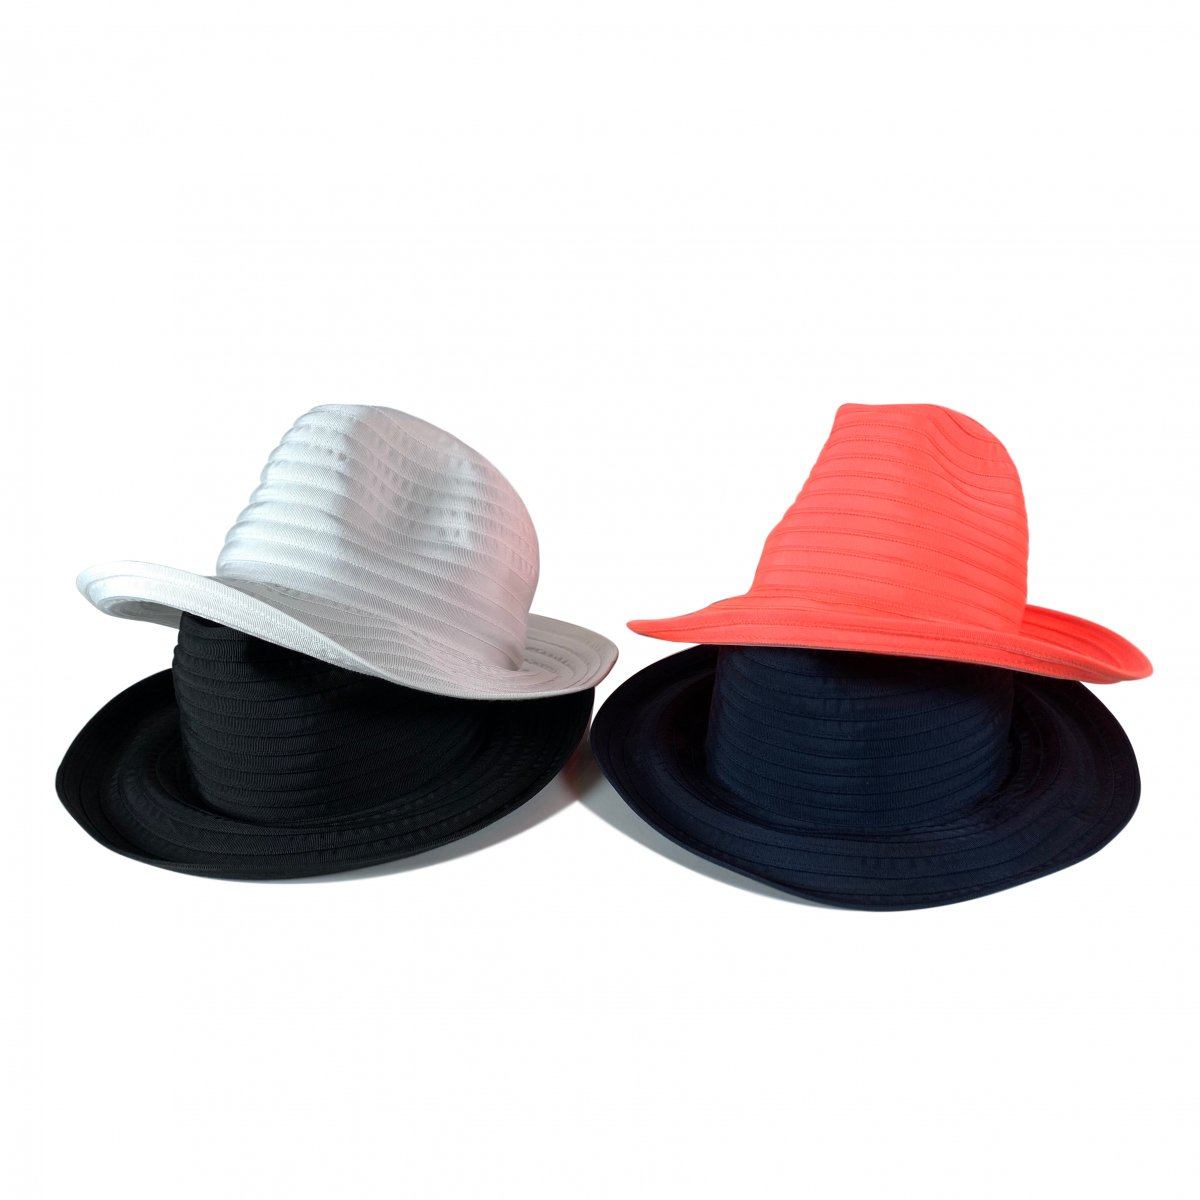 HICOSAKA(ヒコサカ) GROSGRAIN FOLDABLE HAT